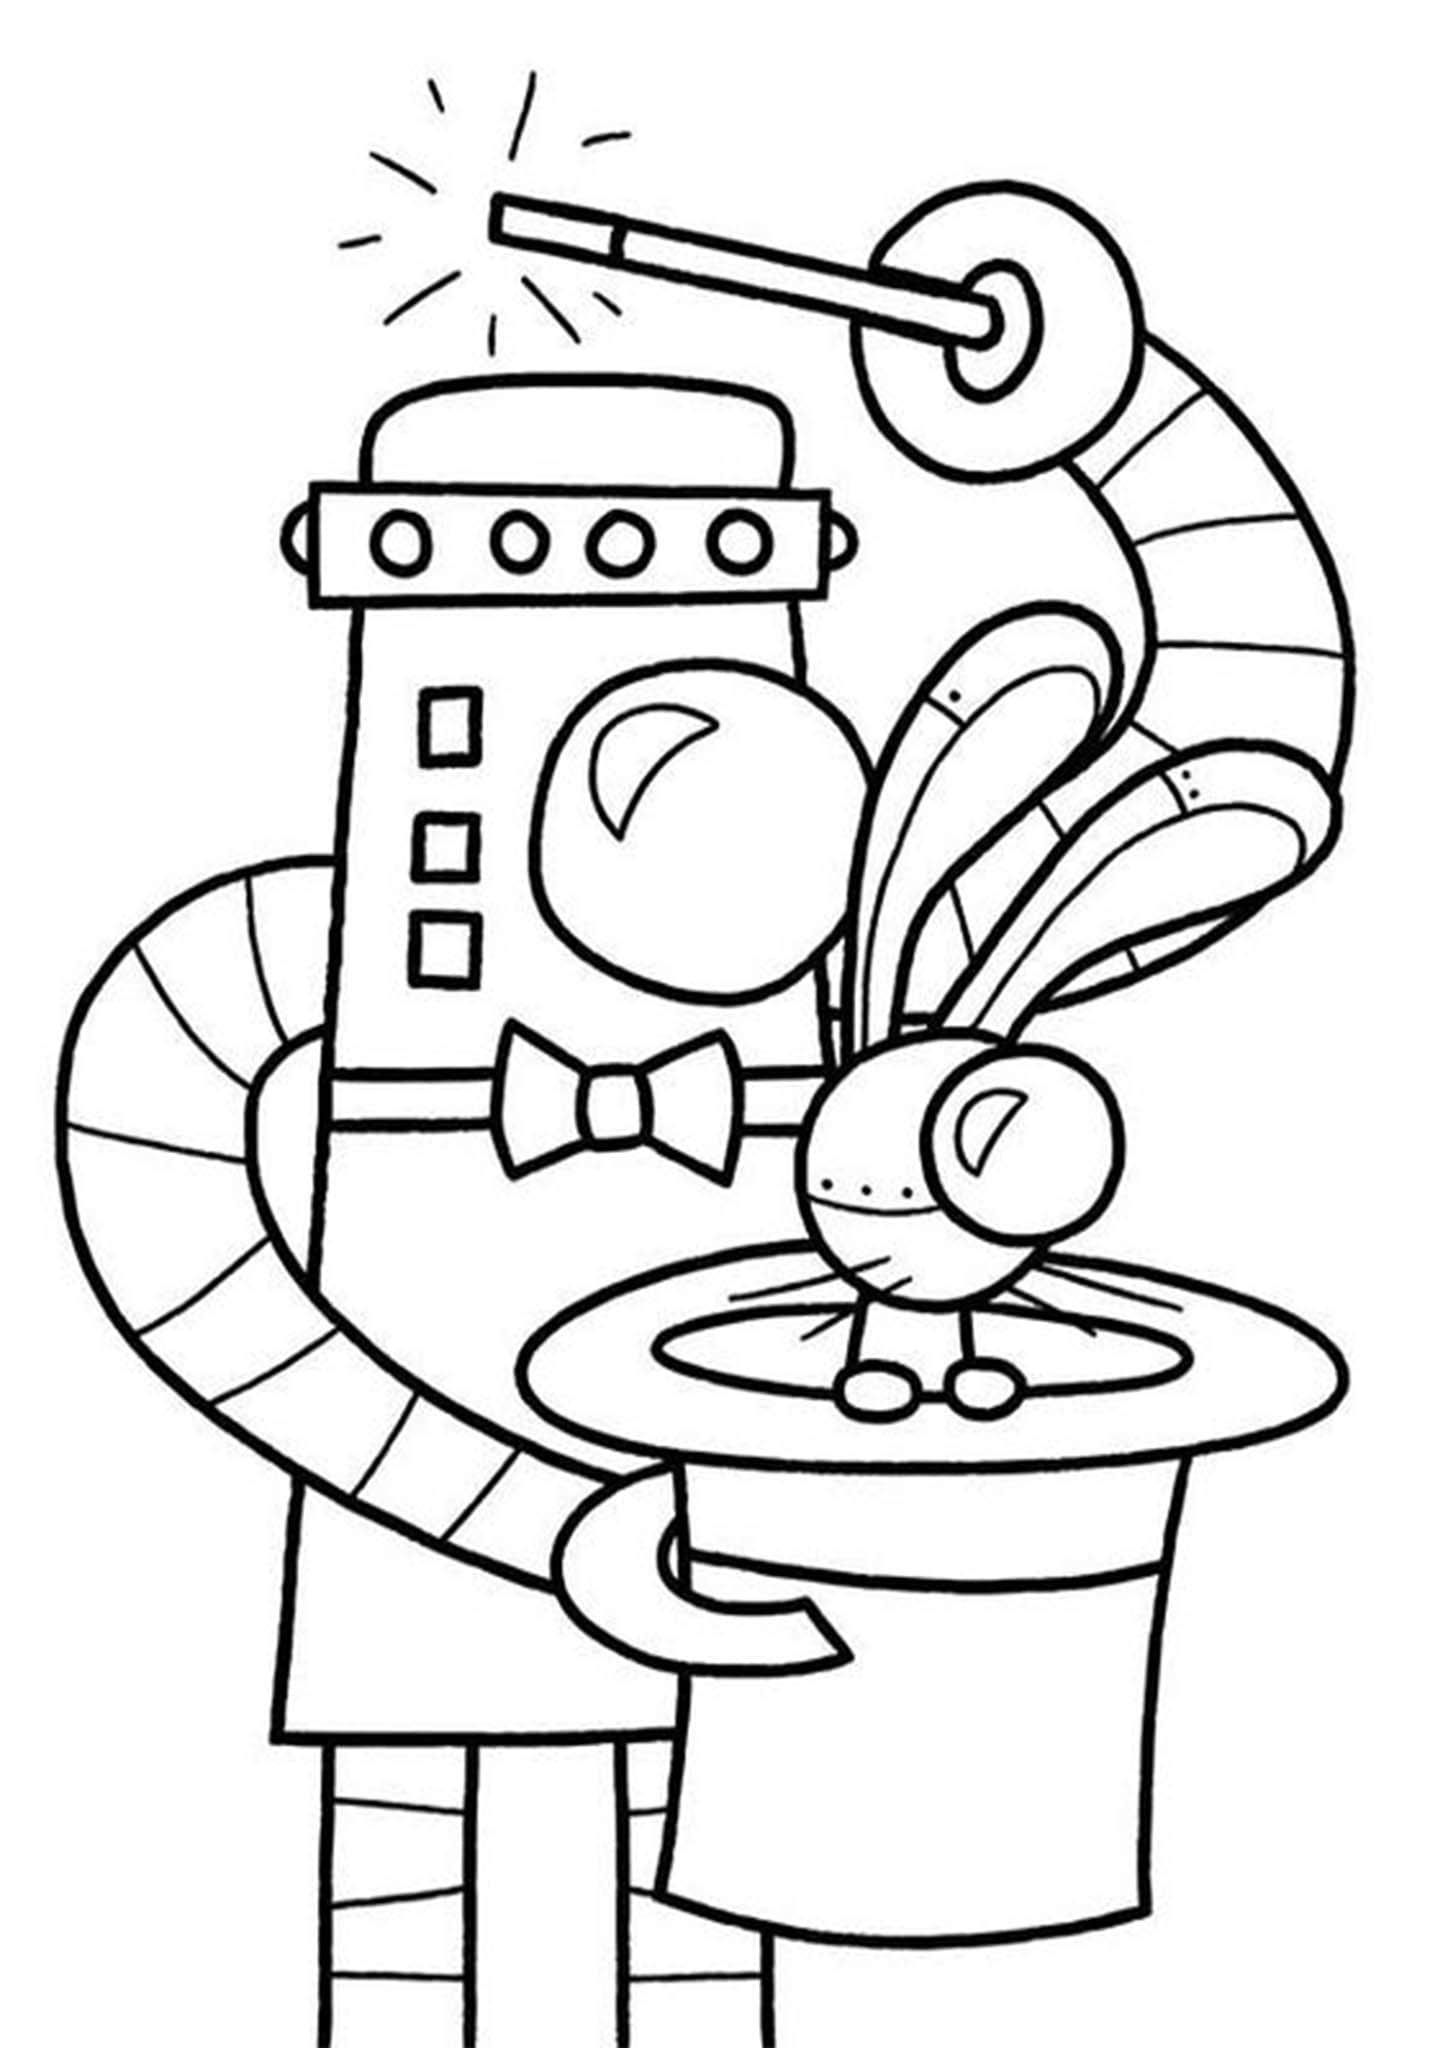 Free Easy To Print Robot Coloring Pages Coloring For Kids Free Coloring Pages Inspirational Cool Coloring Pages